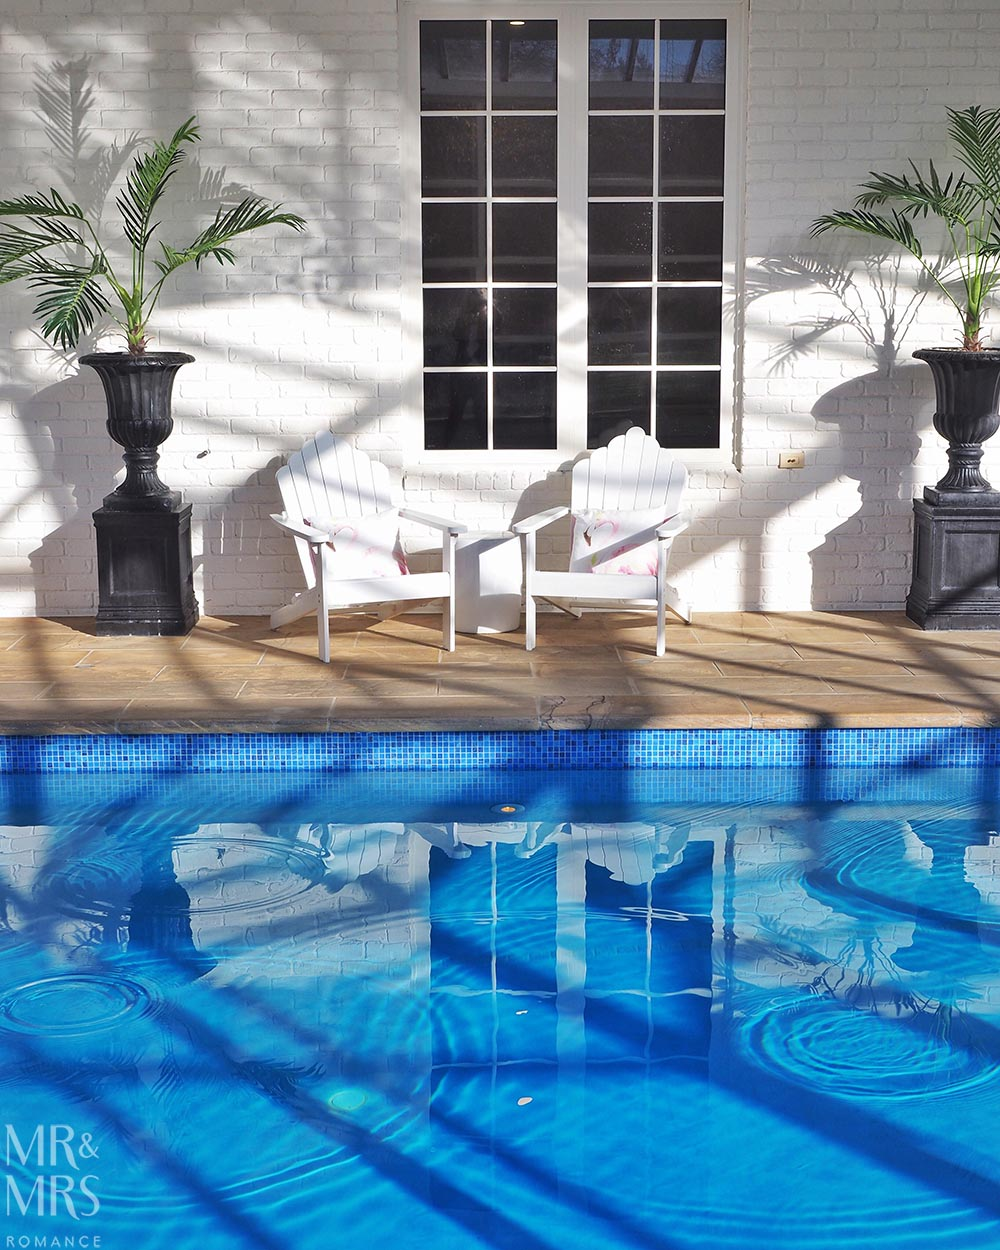 Henley Hotel - pool and loungers